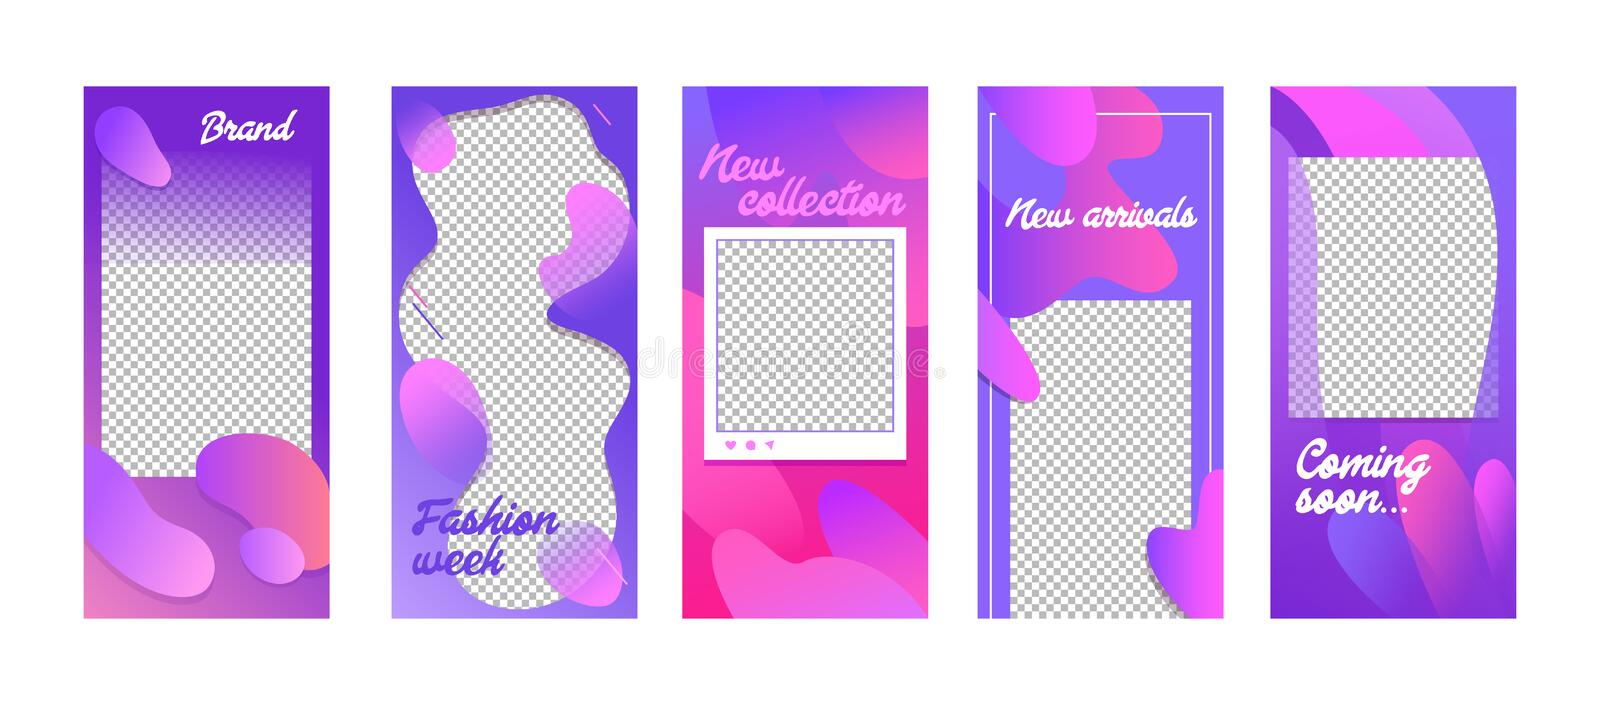 Fashion Templates Set in Fluid Style. Modern Unique Backgrounds Design for Social Media Stories Banners and Digital Marketing vector illustration